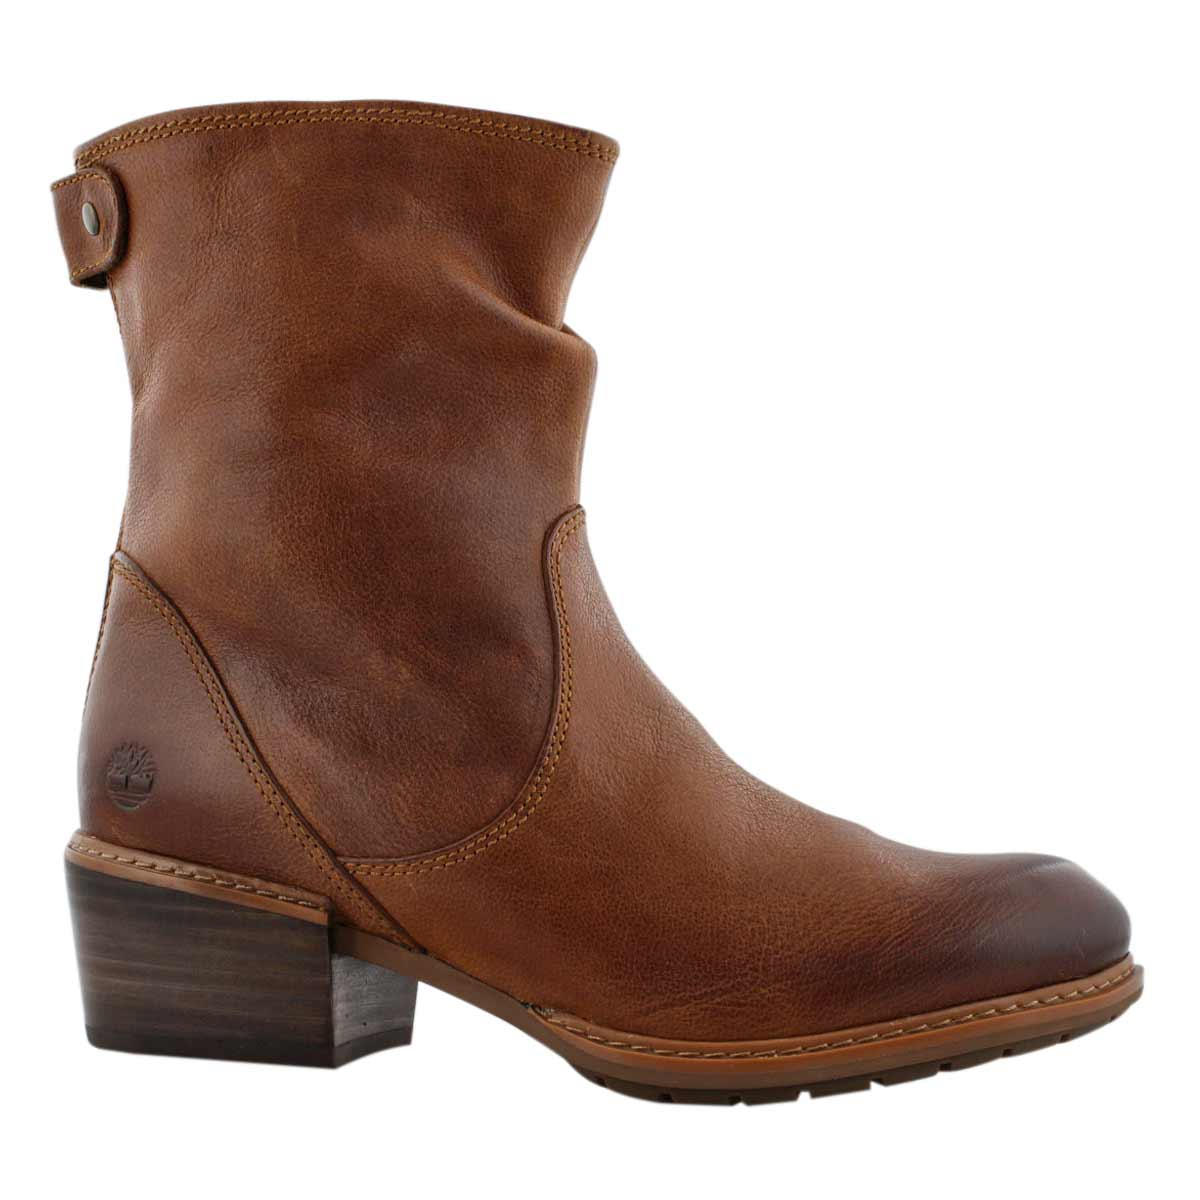 2faca7b1b87 Women's SUTHERLIN BAY brown mid ankle boots